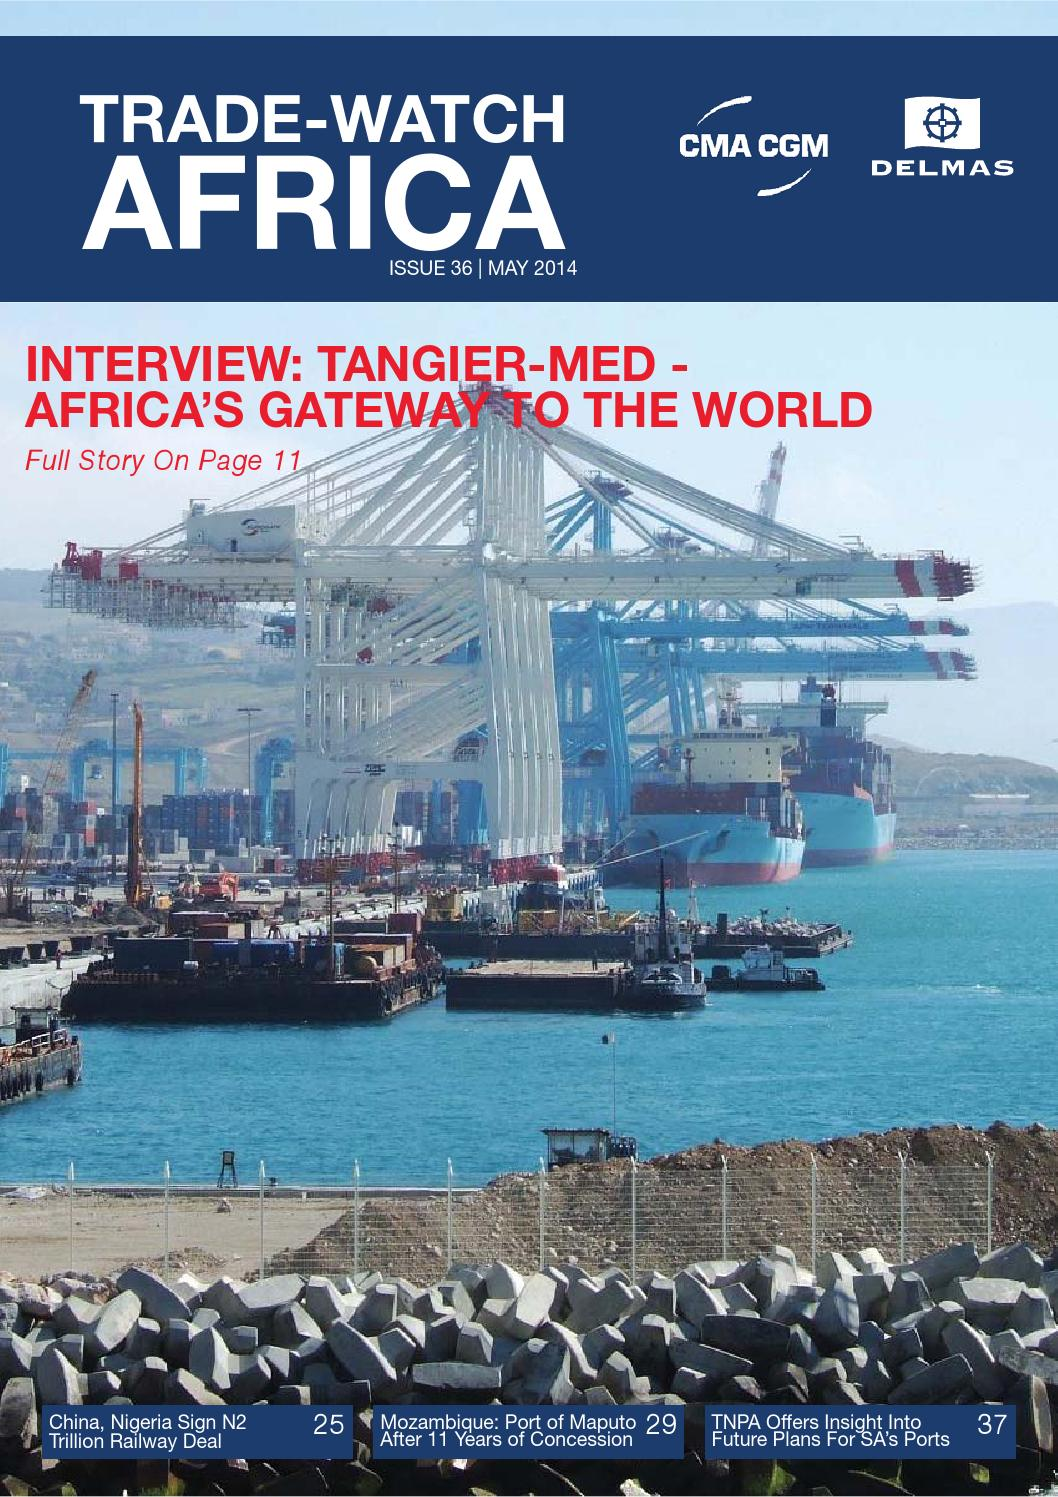 Cma cgm delmas trade watch africa issue 36 may 2014 by cma cgm group issuu - Cma cgm france head office ...